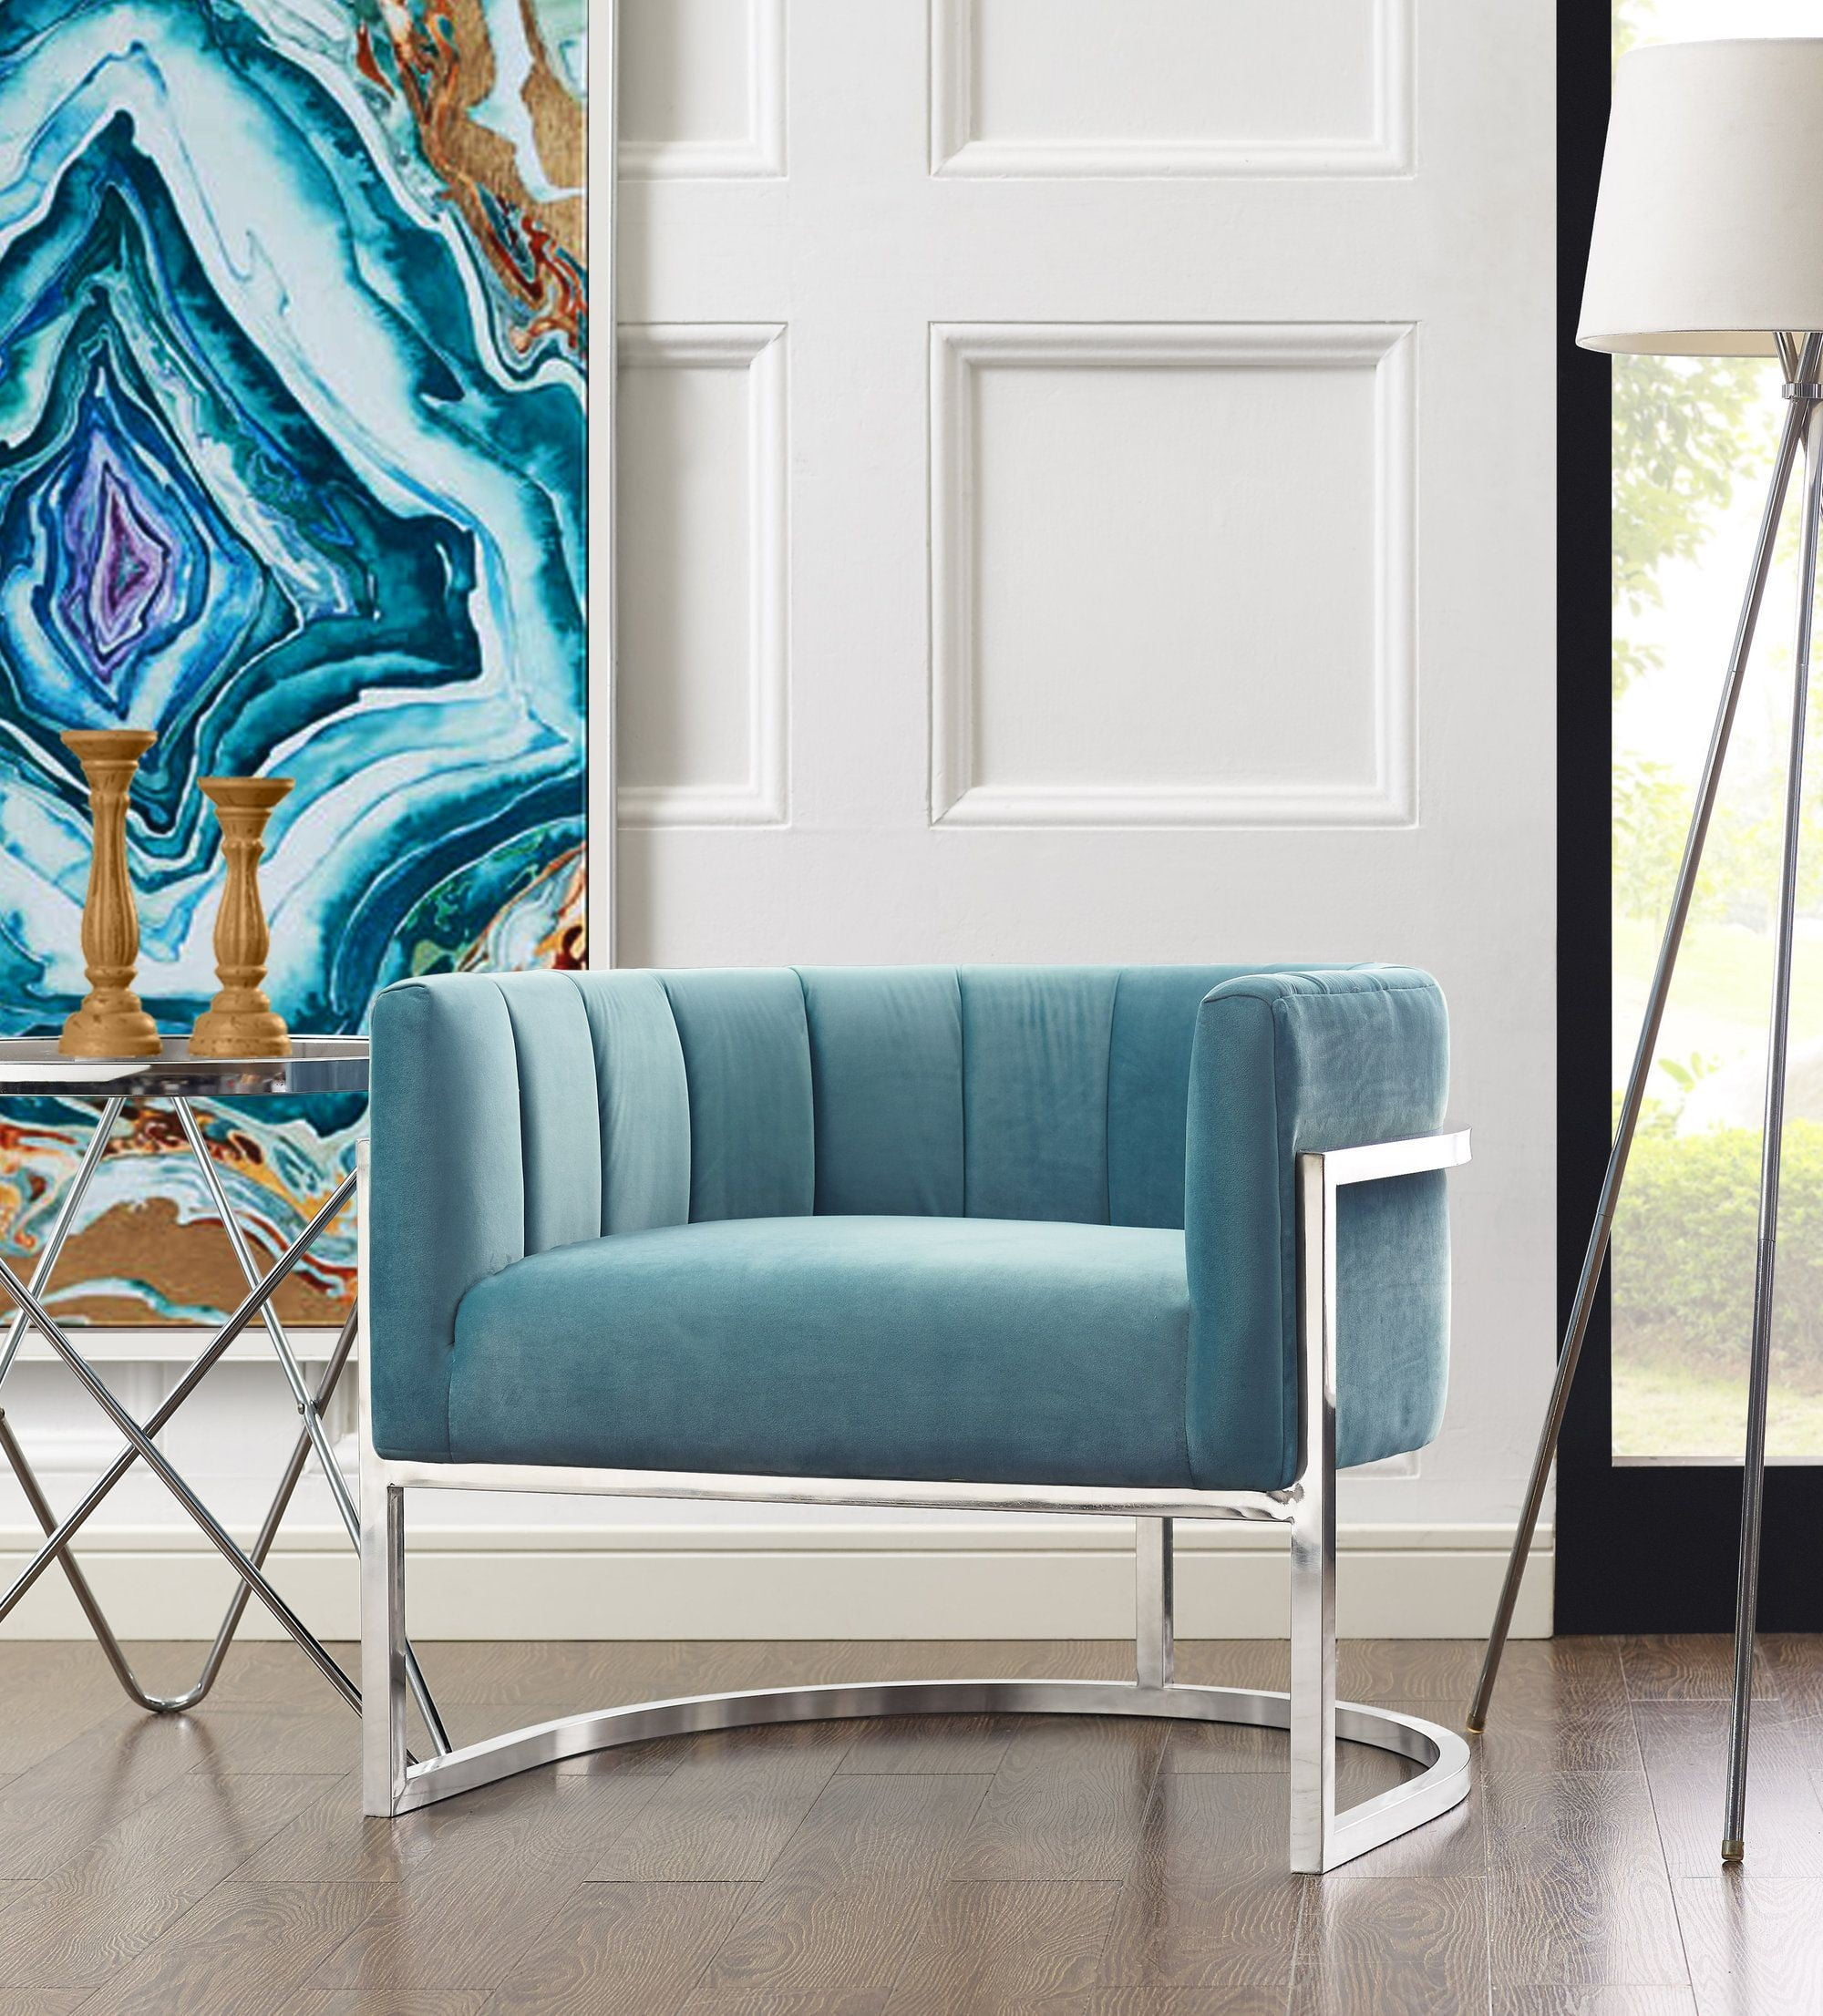 Magnolia Sea Blue Chair with Silver Base from TOV | Coleman Furniture